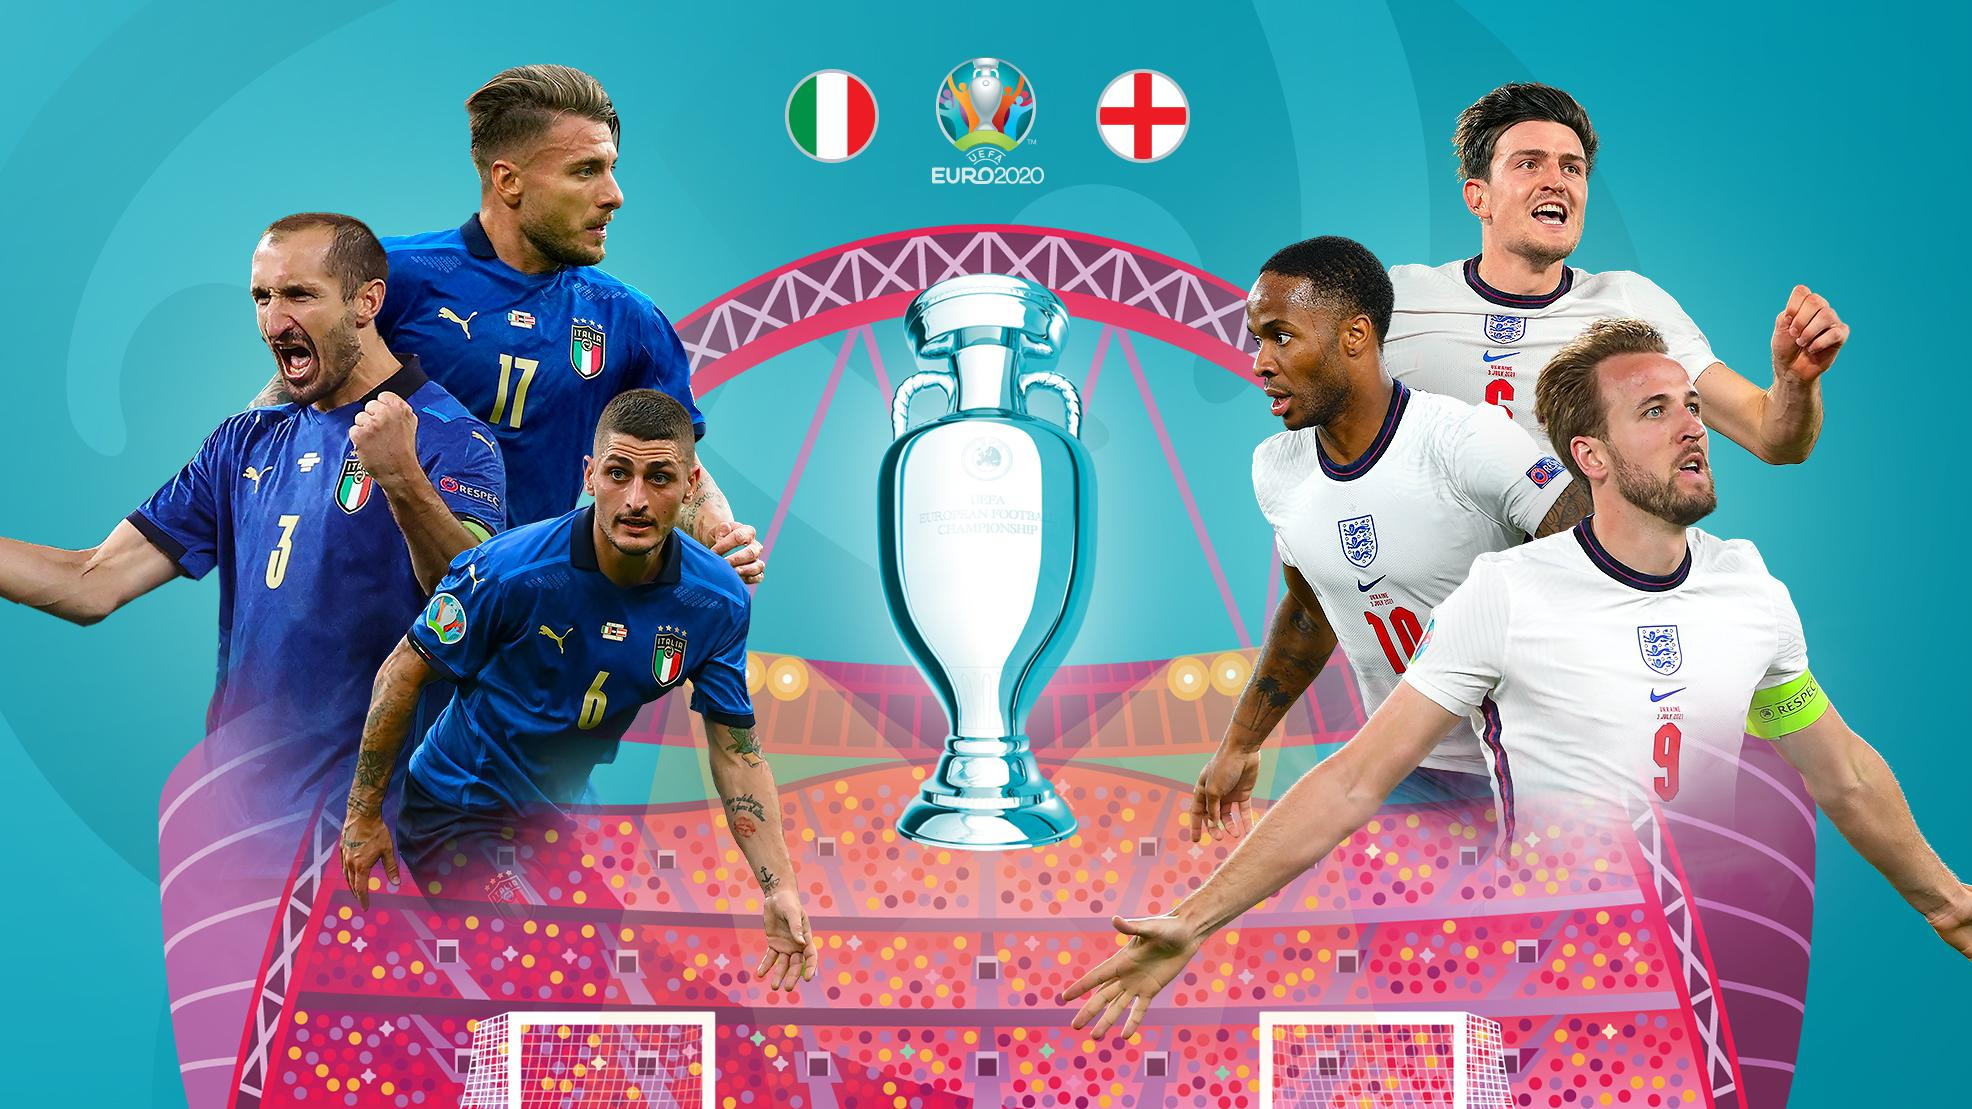 Euro 2020 Final: Facts, background and stats   CricketSoccer